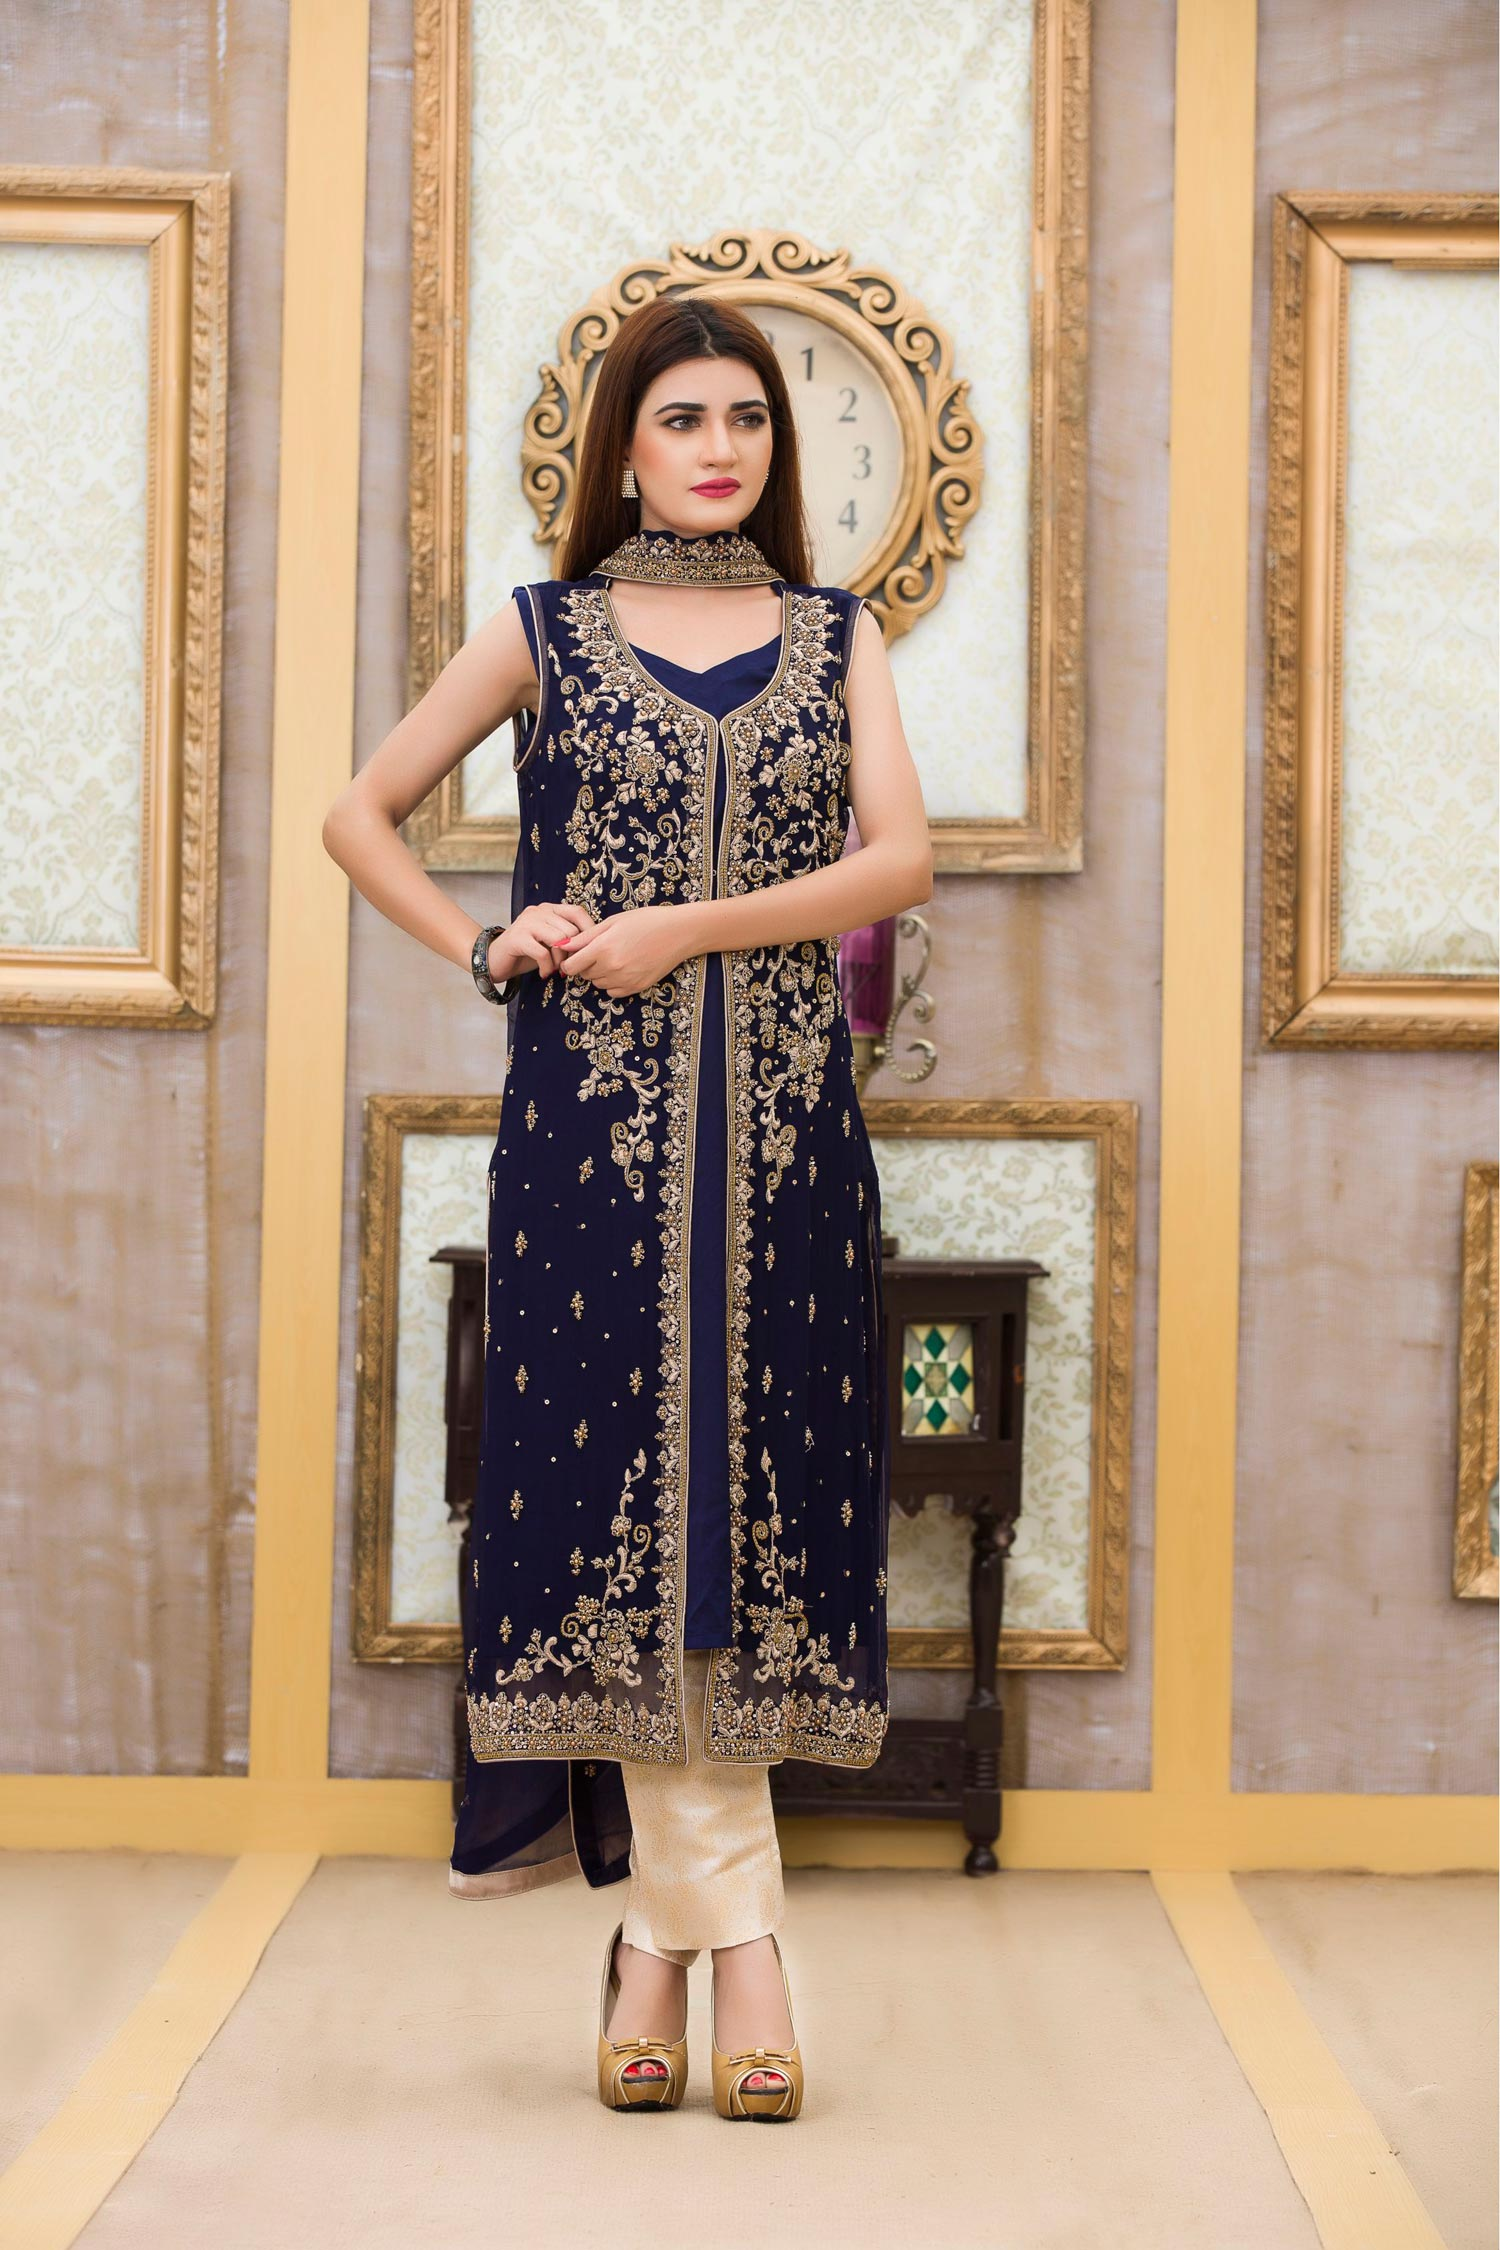 Buy Exclusive Boutique Blue Navy Bridal Dress - G10840 Online In USA, Uk & Pakistan - 01